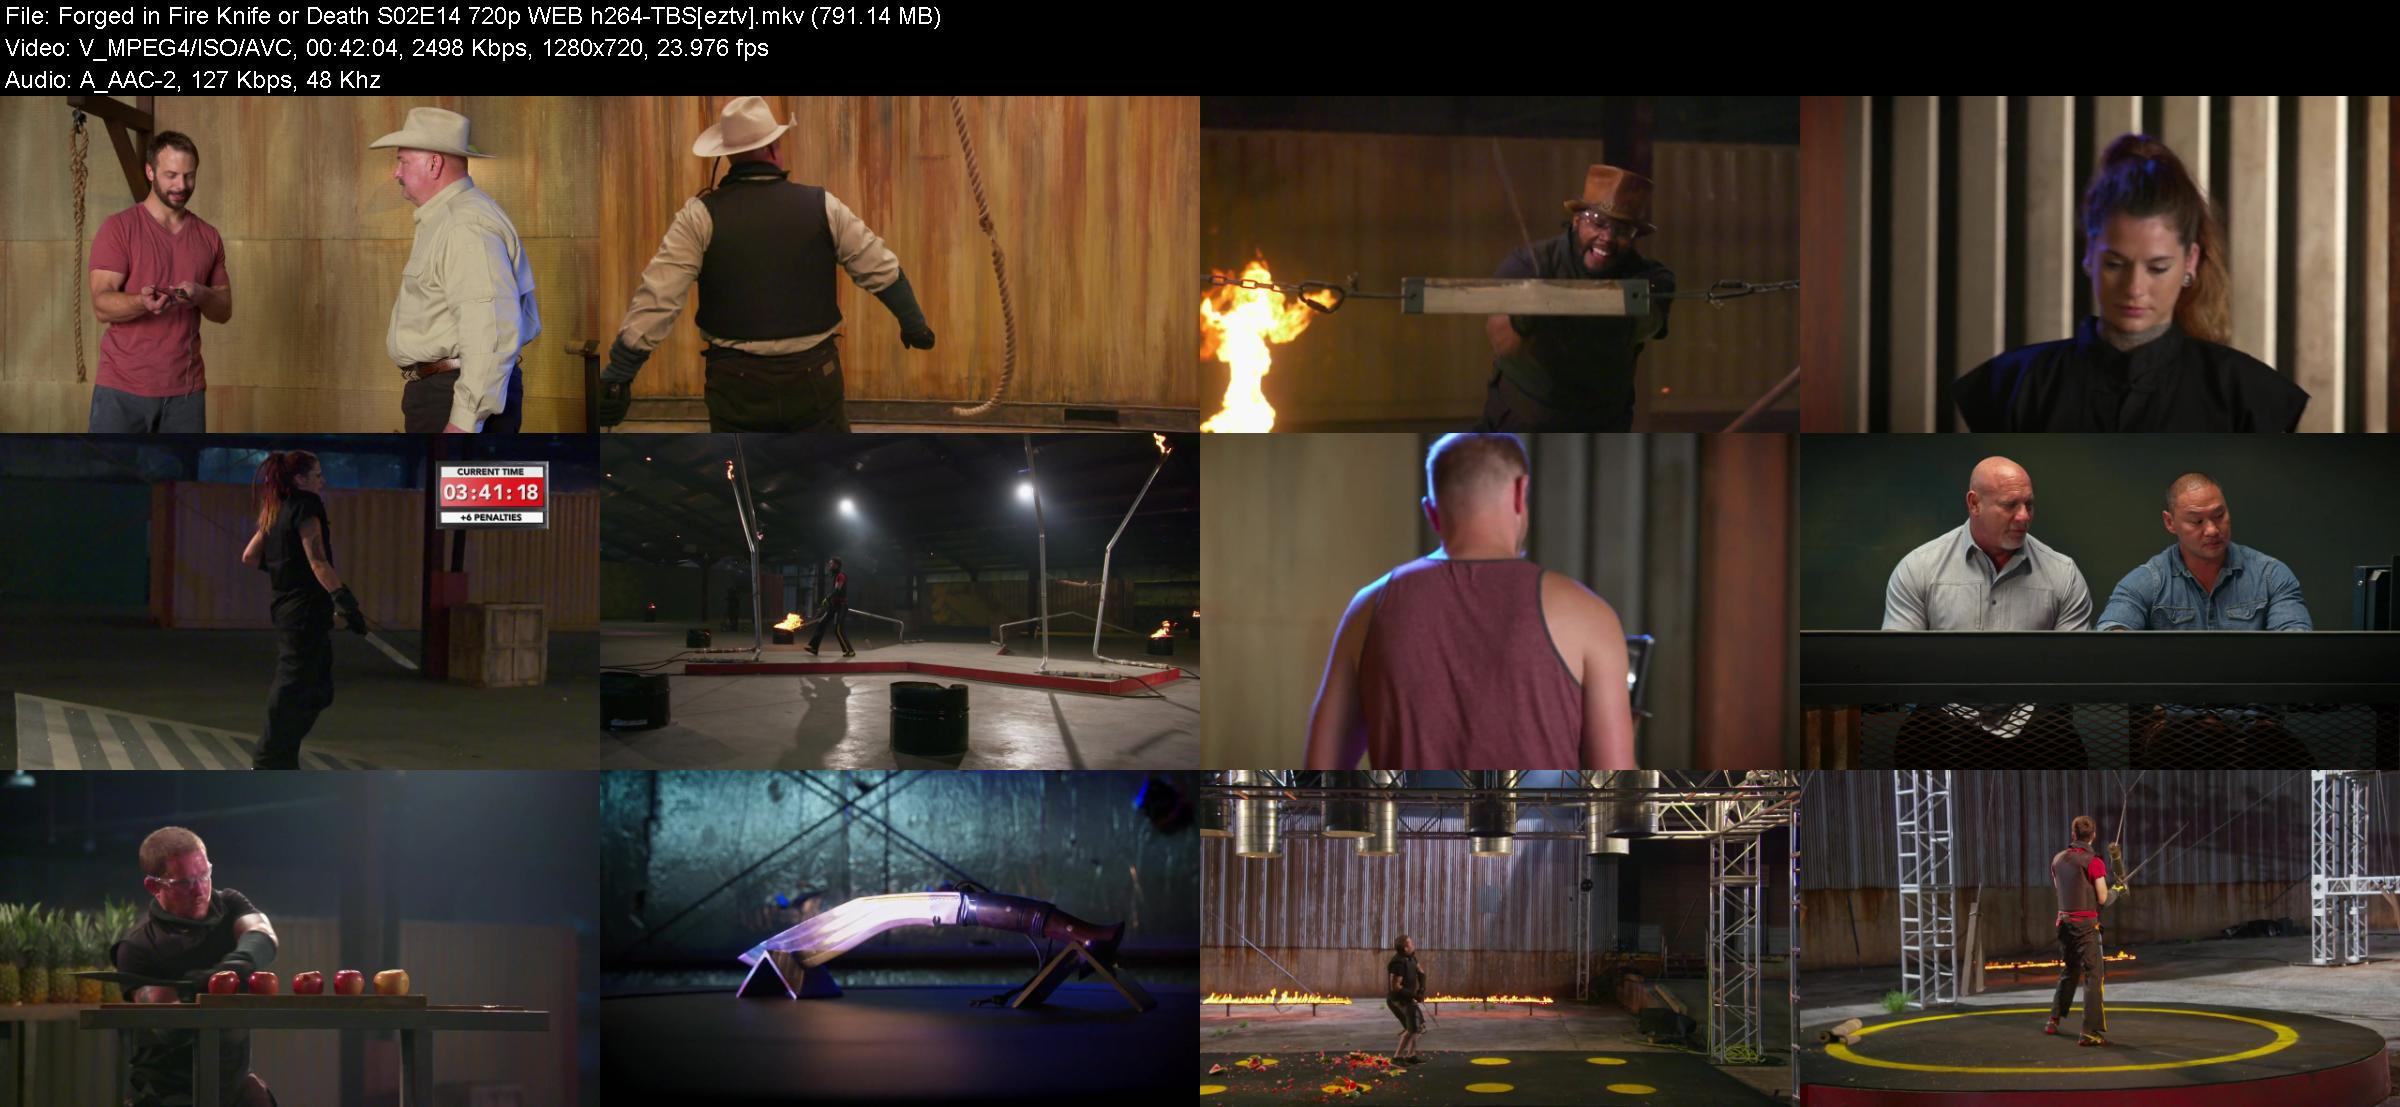 Forged in Fire Knife or Death S02E14 720p WEB h264-TBS